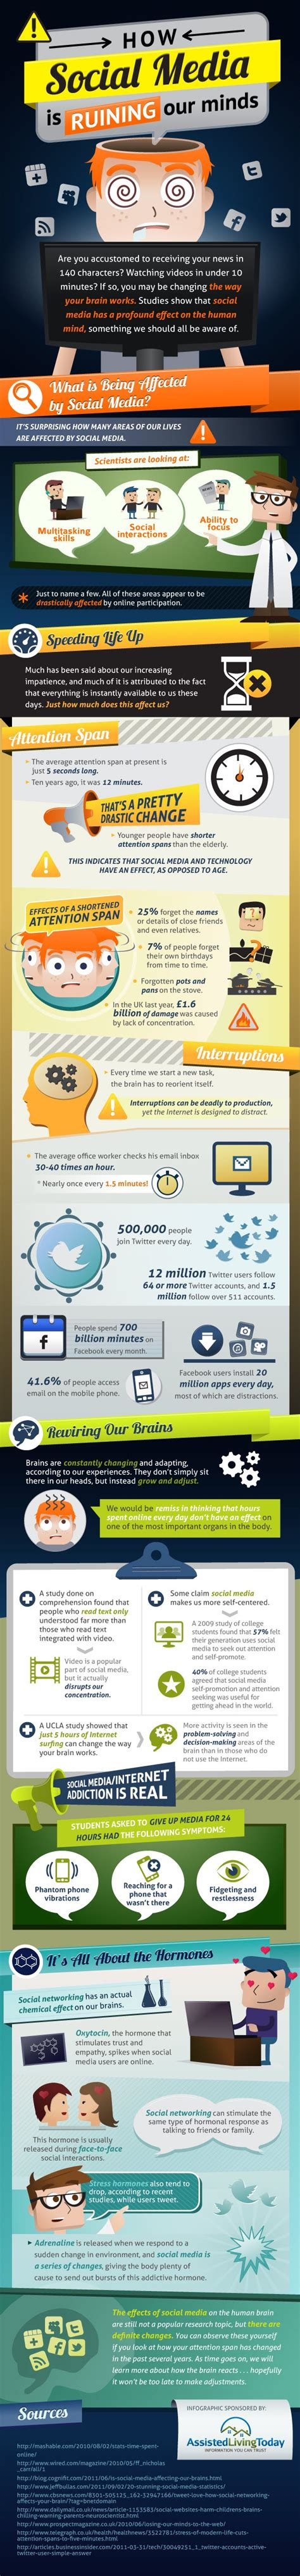 growth of social media infographic search engine journal is social media ruining our minds infographic search